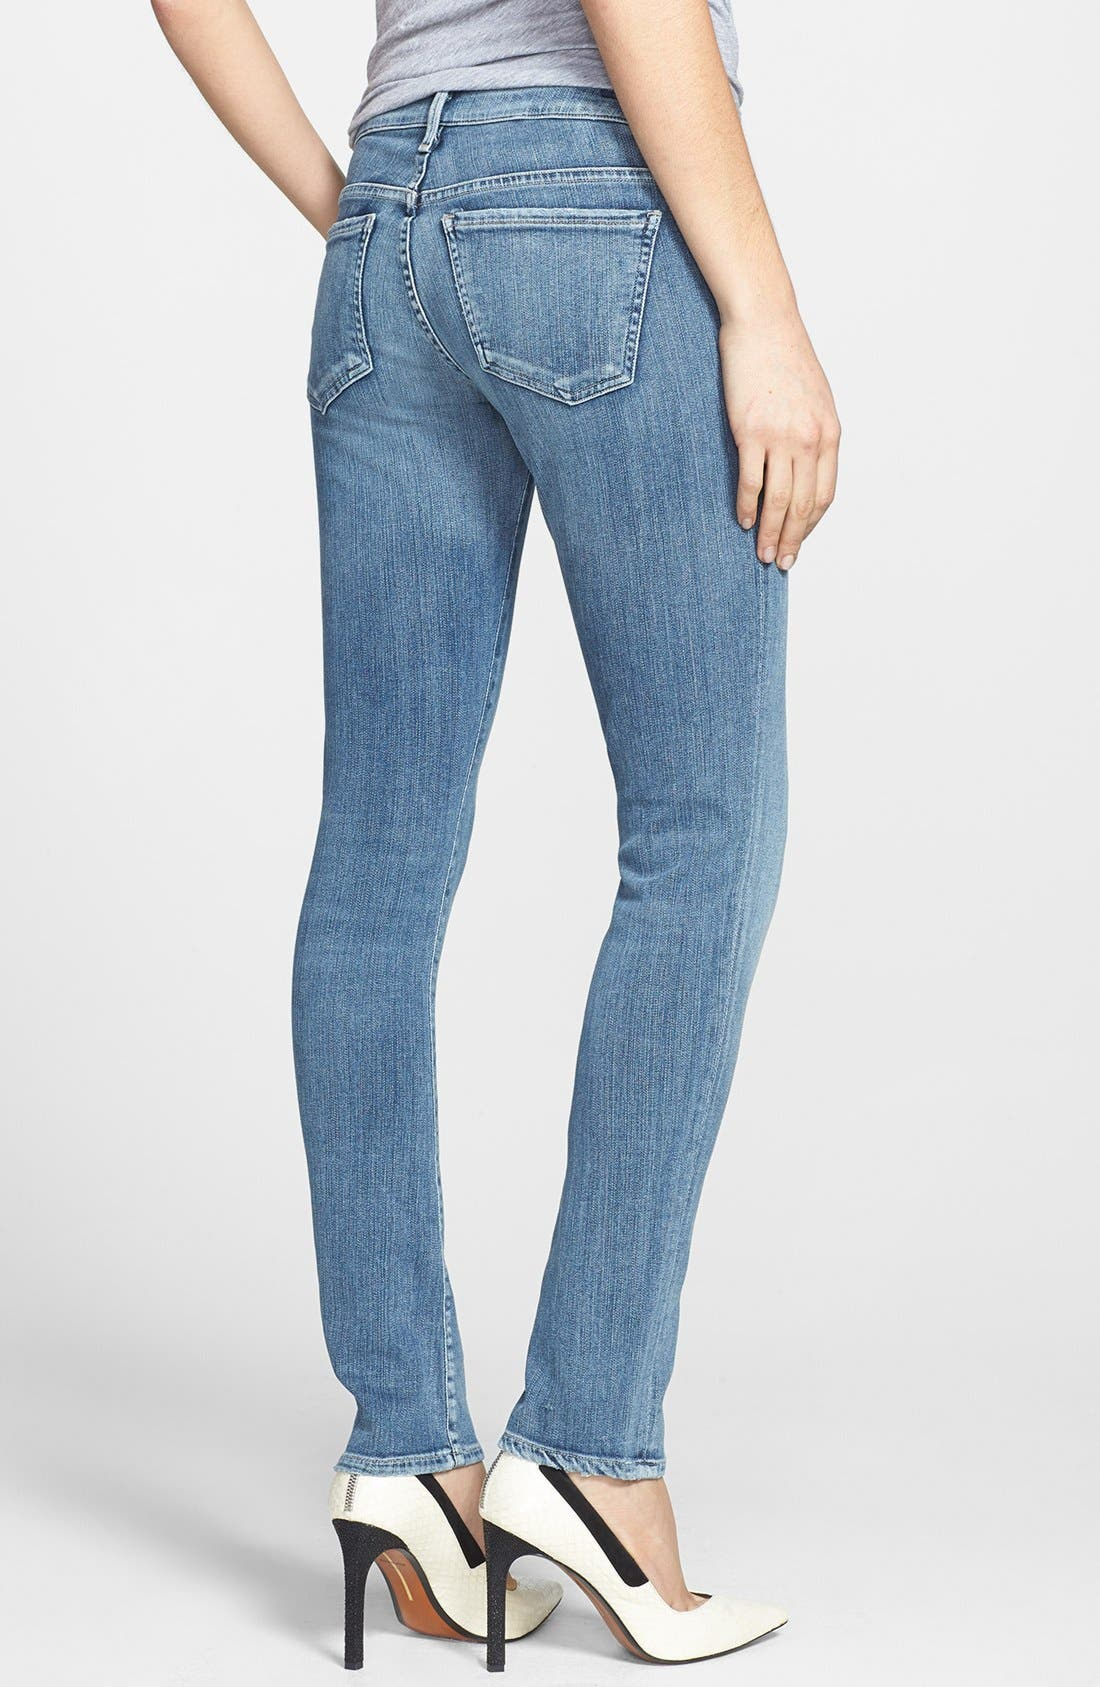 Alternate Image 2  - Citizens of Humanity 'Racer' Low Rise Skinny Jeans (Gaze)